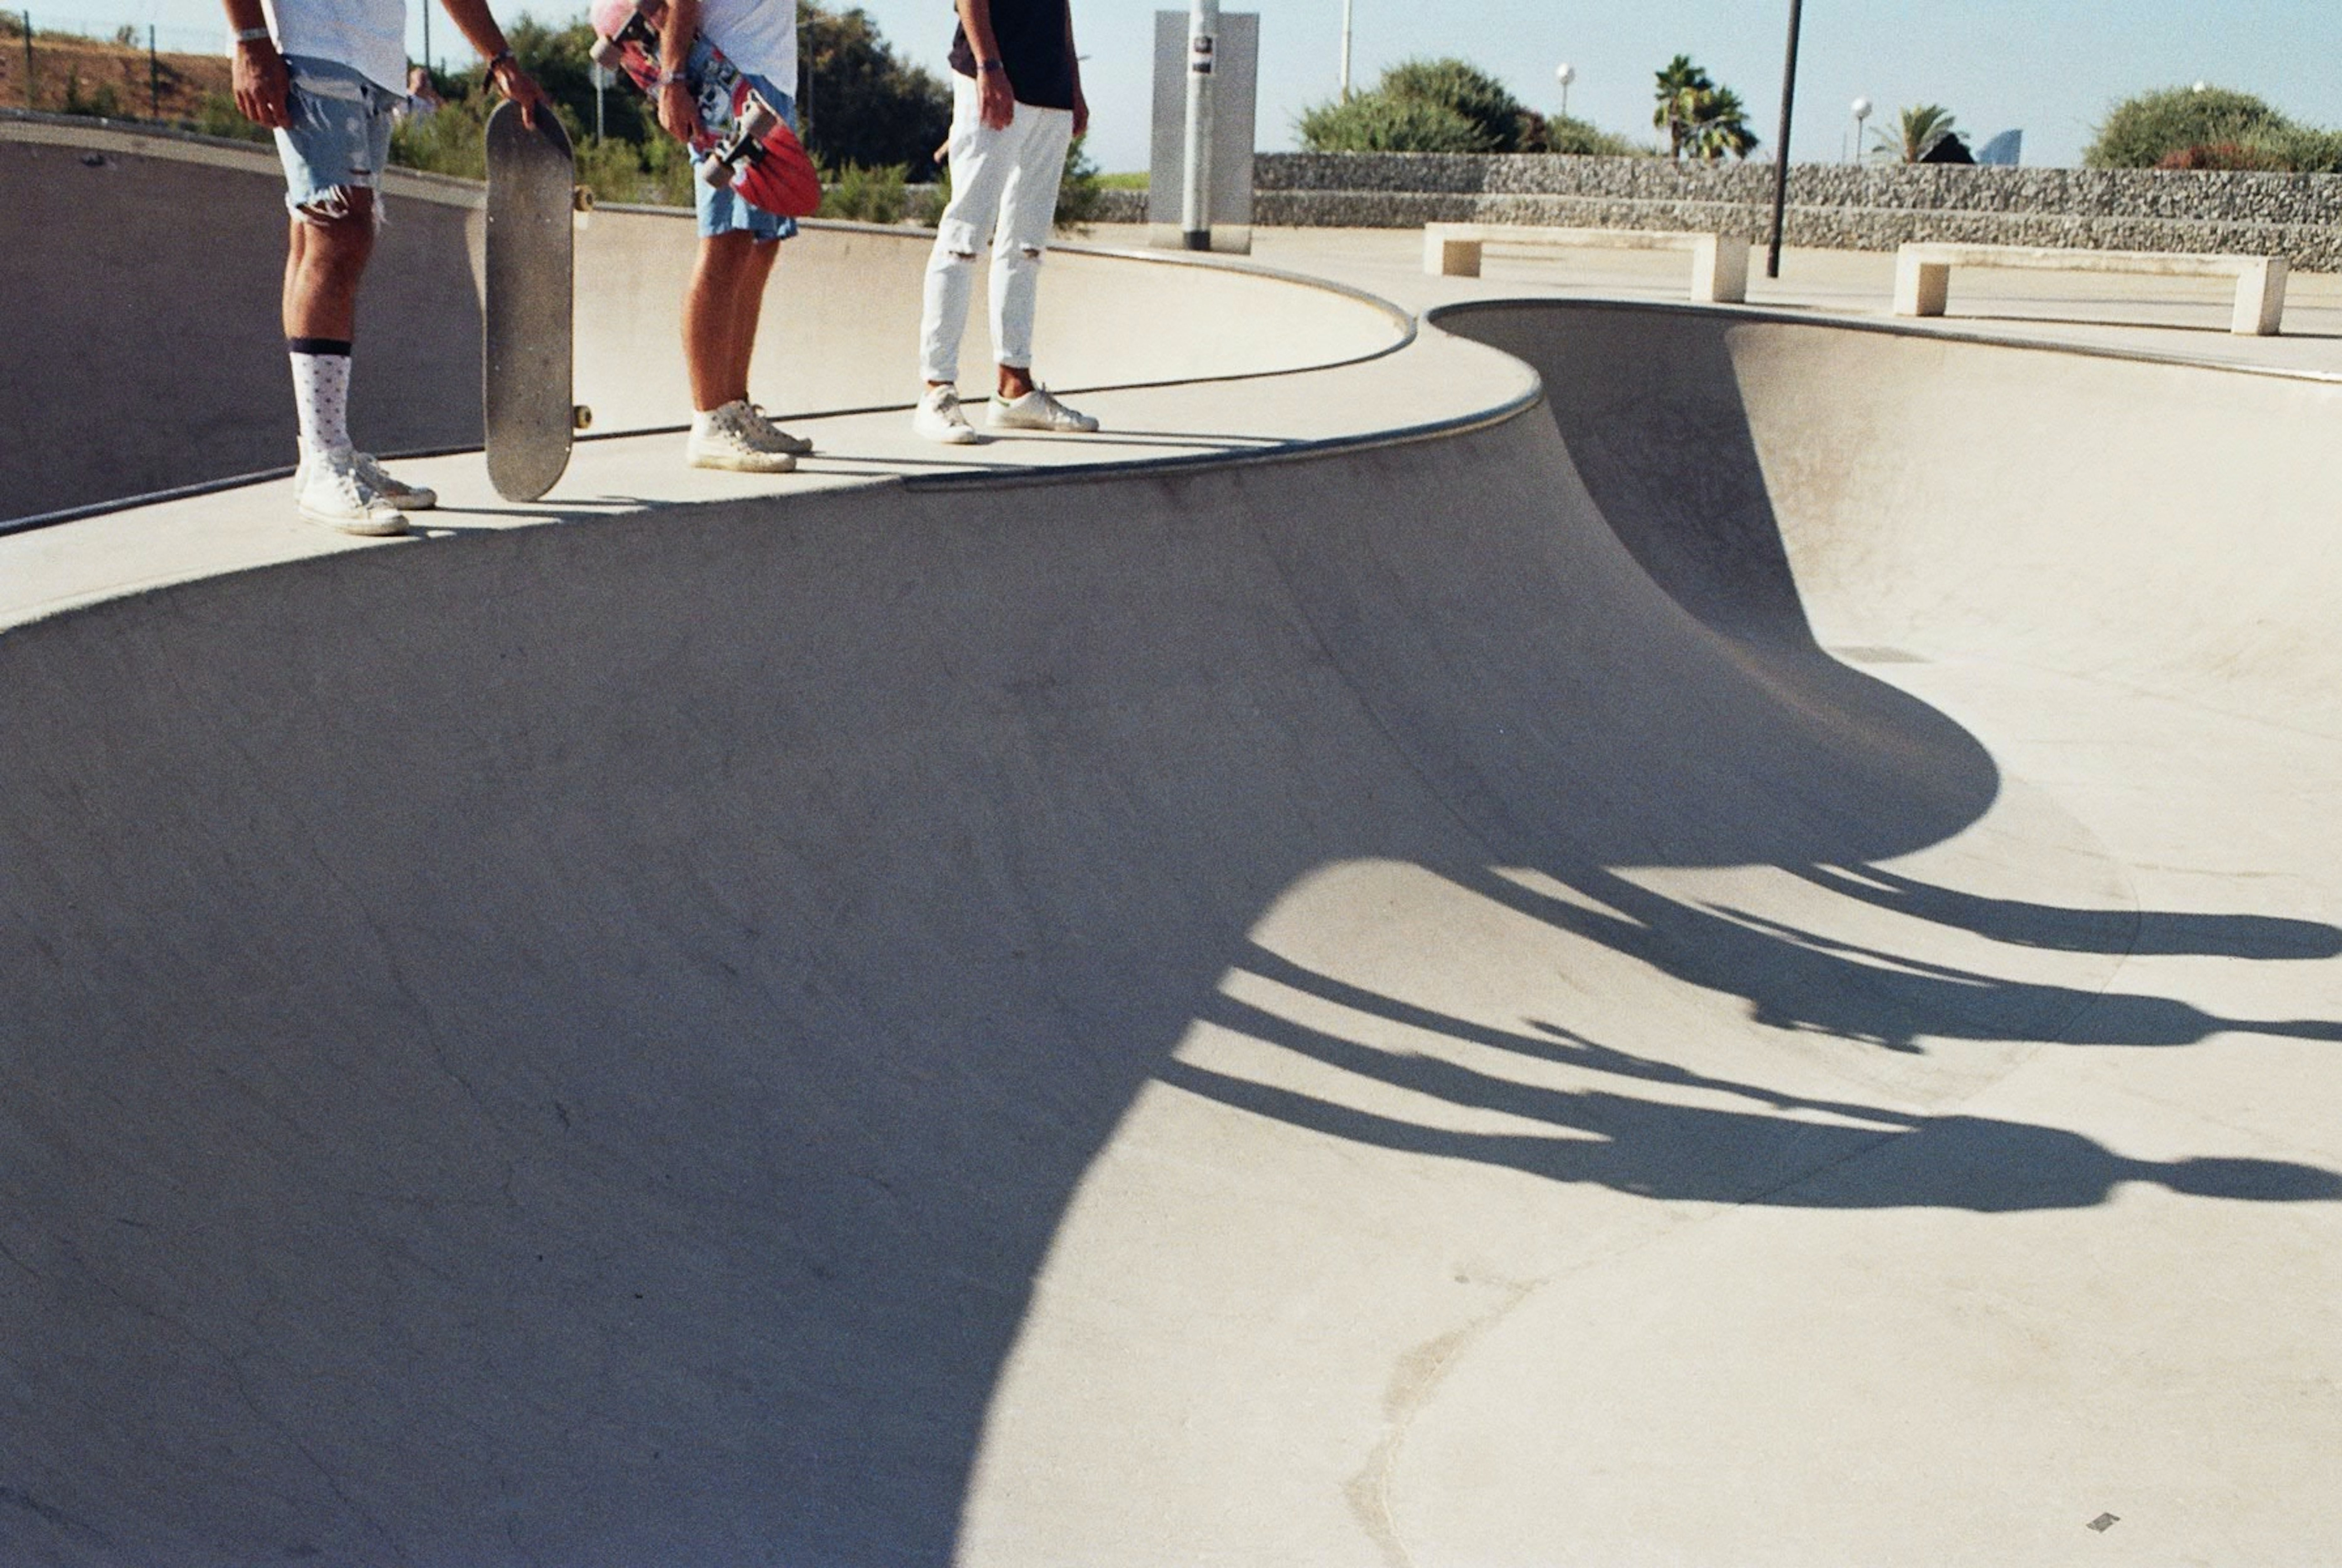 three skaters standing on skateboard concrete ramp with shadow at daytime